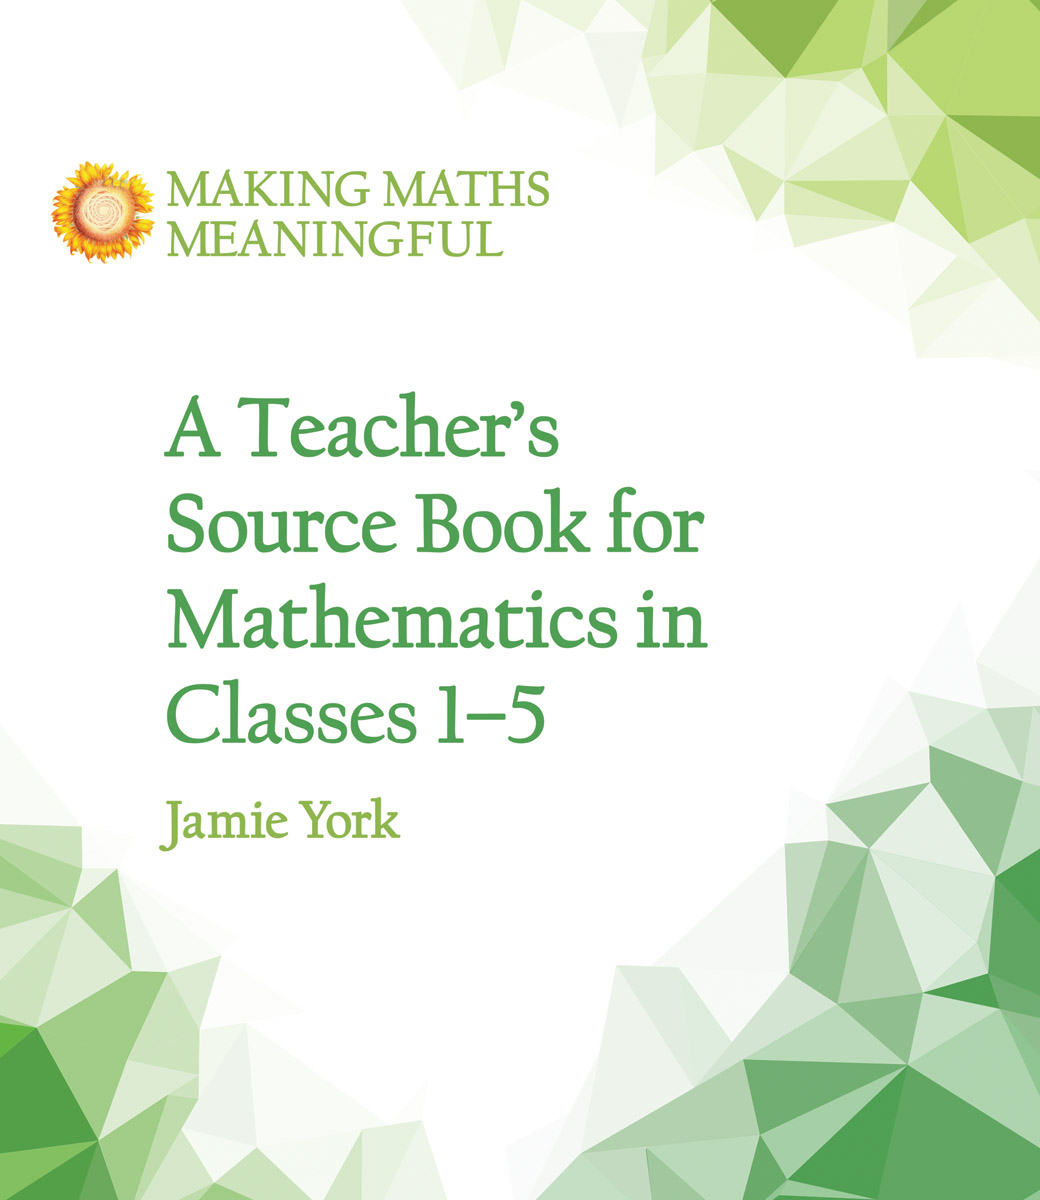 Image for <B>Teacher's Source Book for Mathematics in Classes 1 to 5 </B><I> Making Maths Meaningful</I>